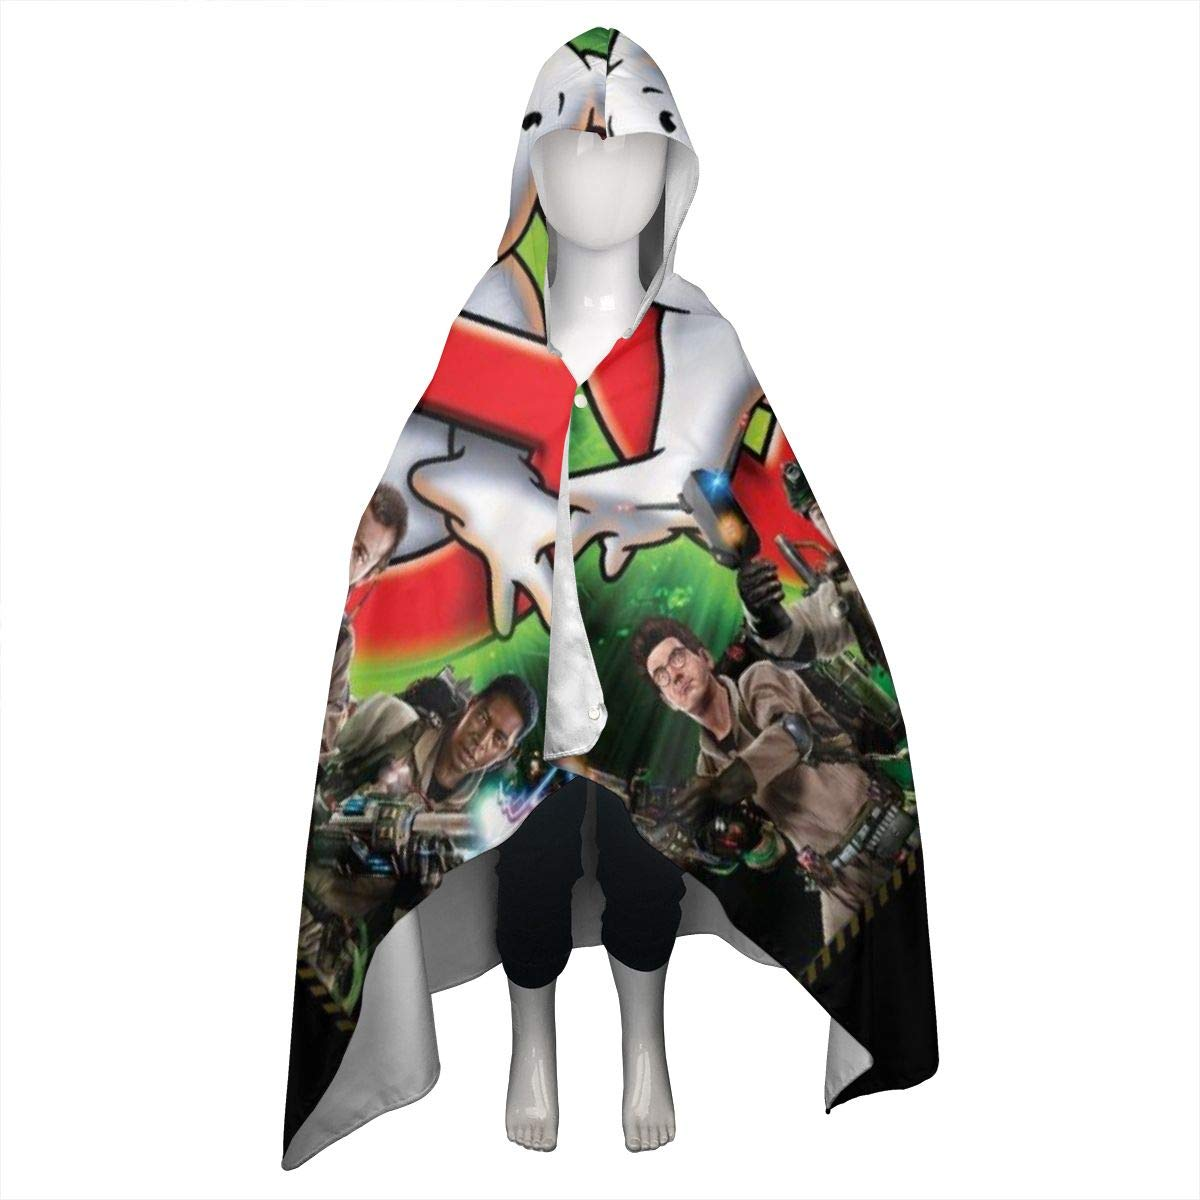 Ghostbusters Hooded Bath/Pool/Beach Towel Soft Hooded Throw Blanket Wearable Hooded Blanket for Adult and Kids by BurnNow (Image #1)